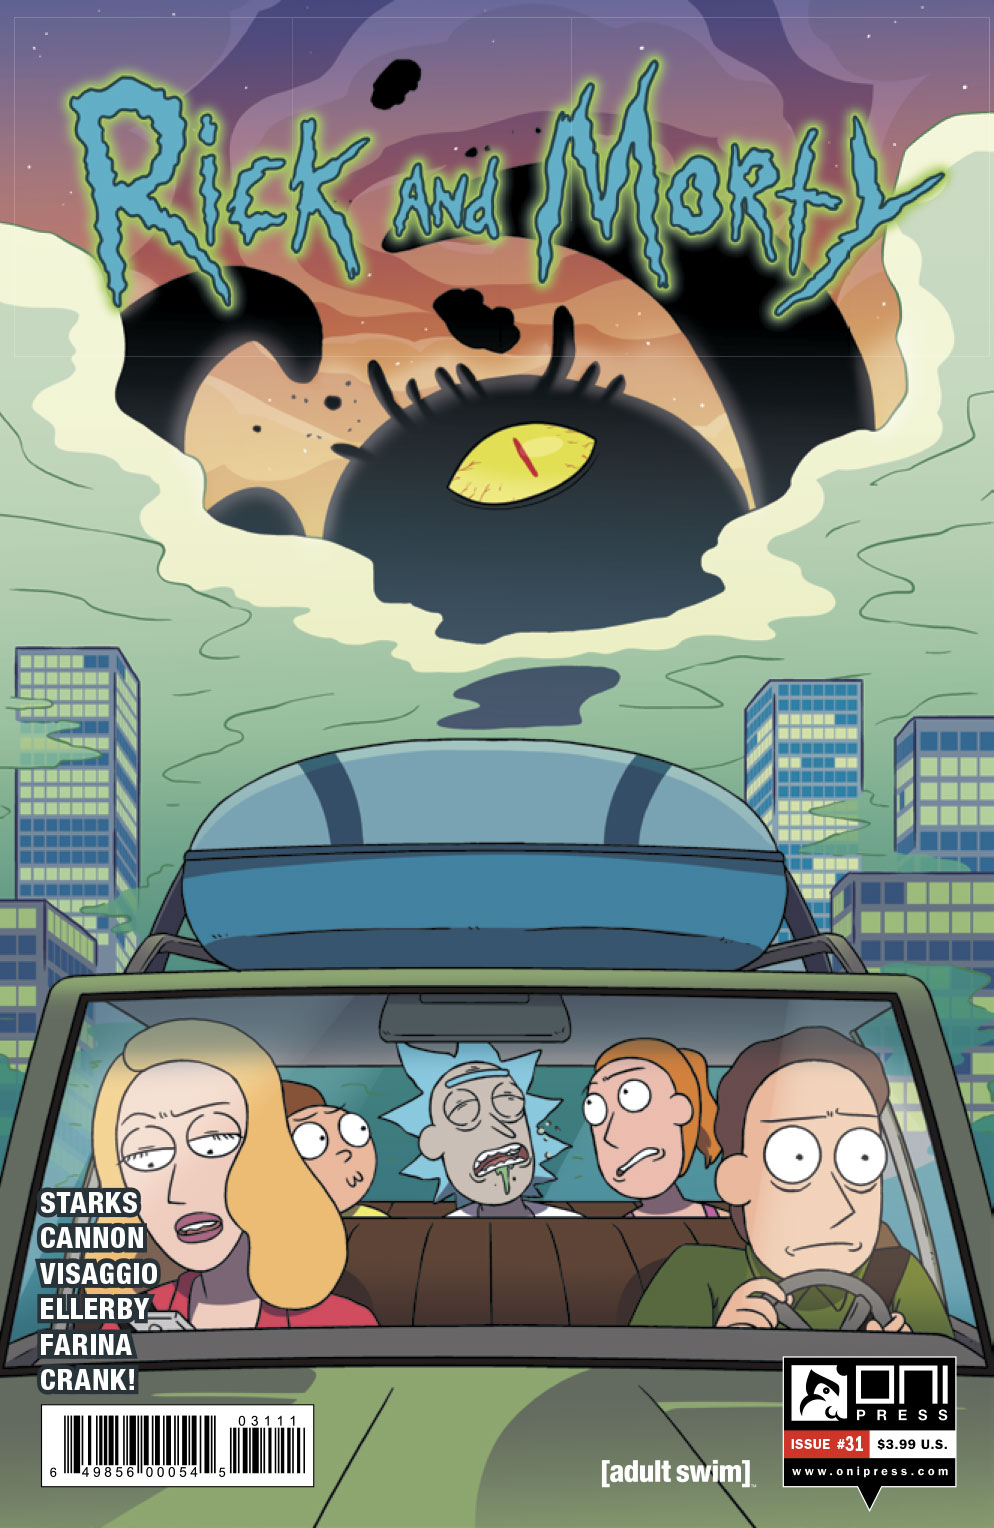 Rick and Morty #31 Review